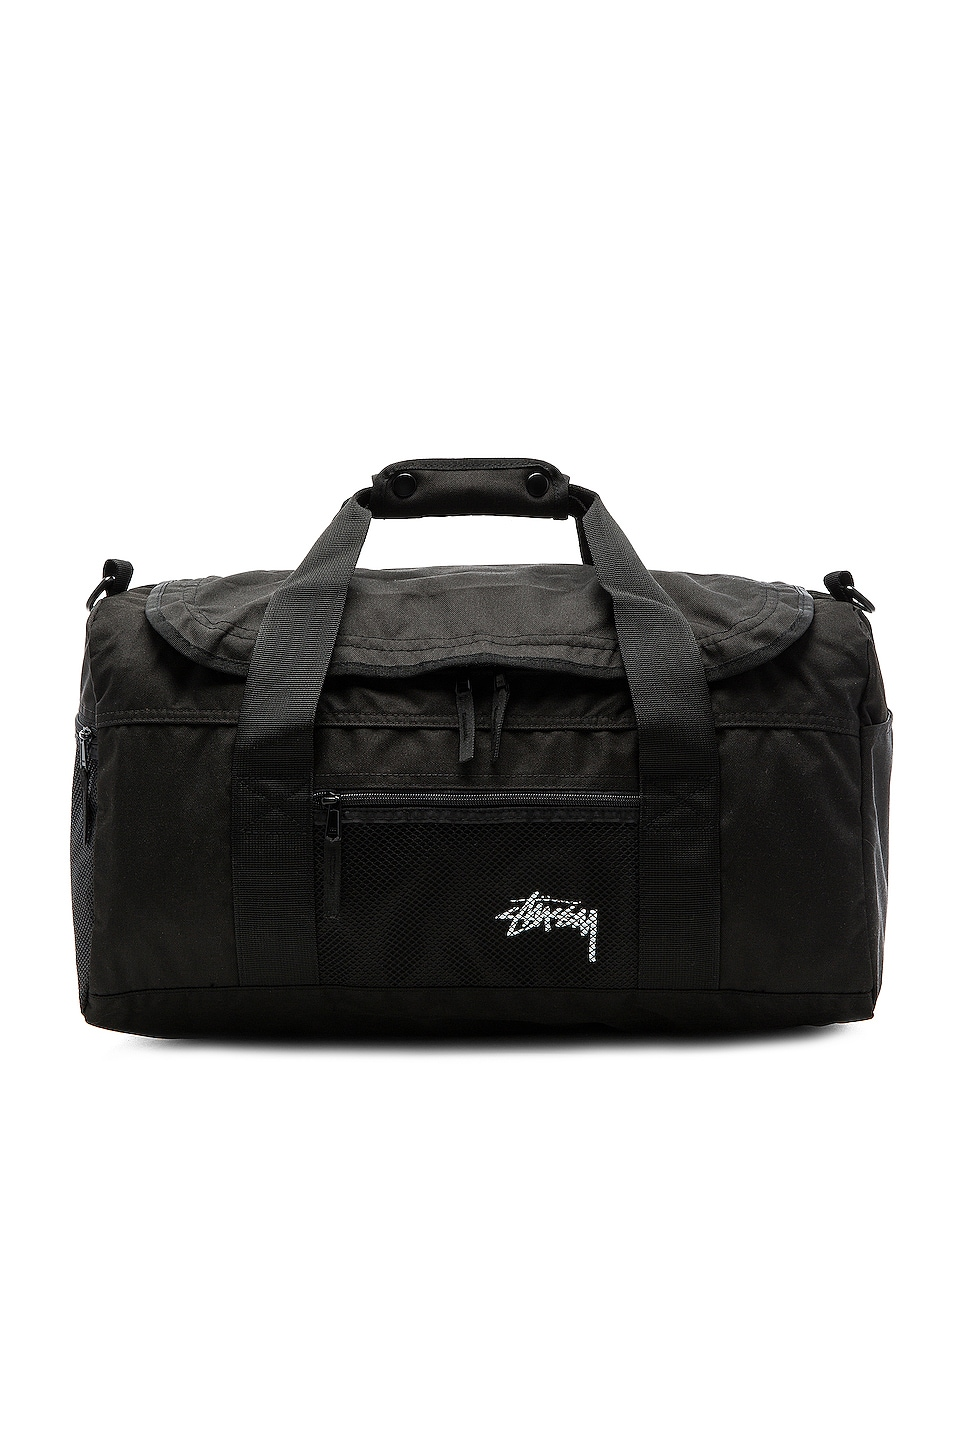 Stock Duffle Bag by Stussy